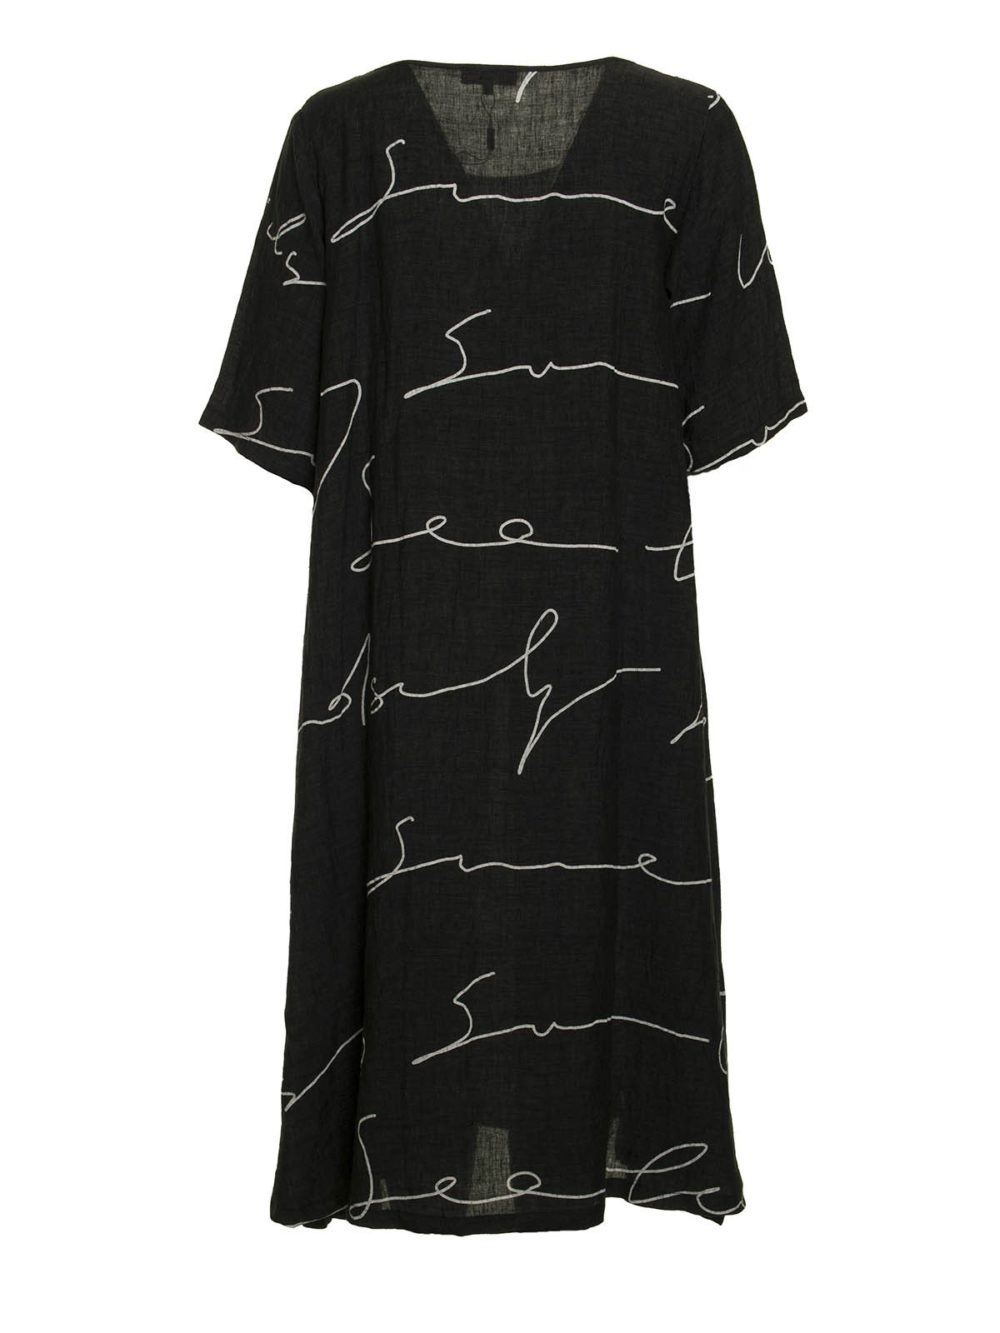 Signature Print Linen Dress Sahara Katie Kerr Women's Clothing